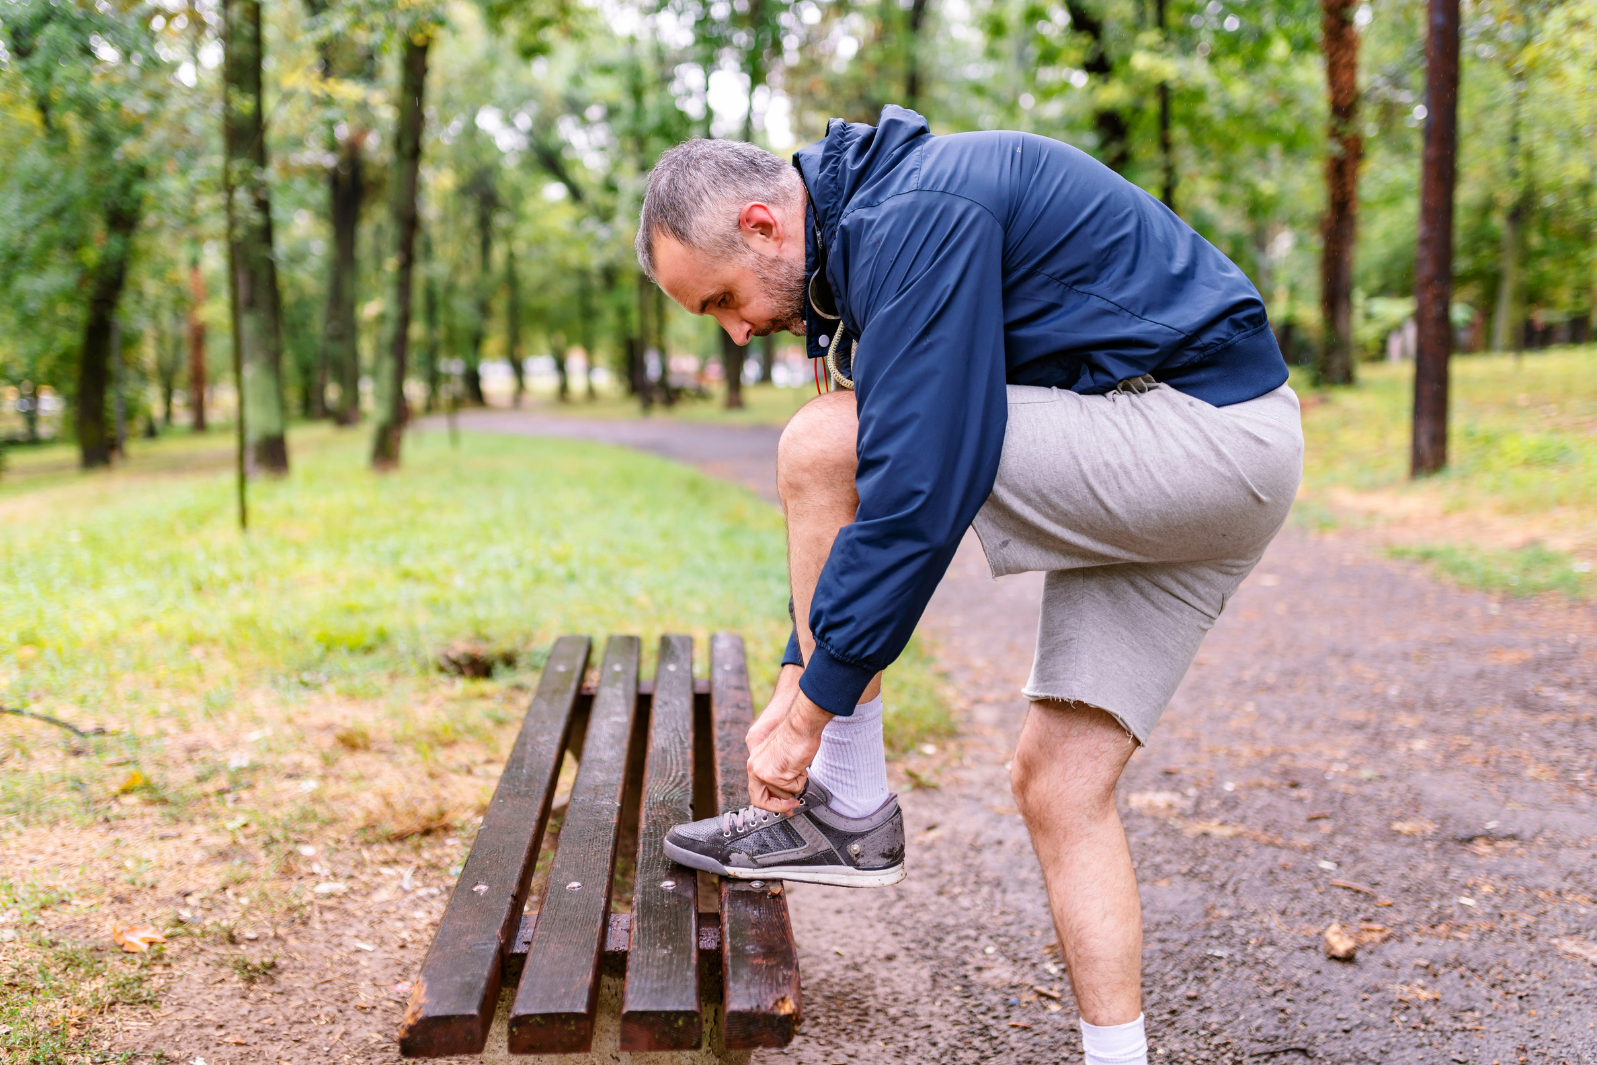 Man in his 40s tying up his laces for a run in the woods